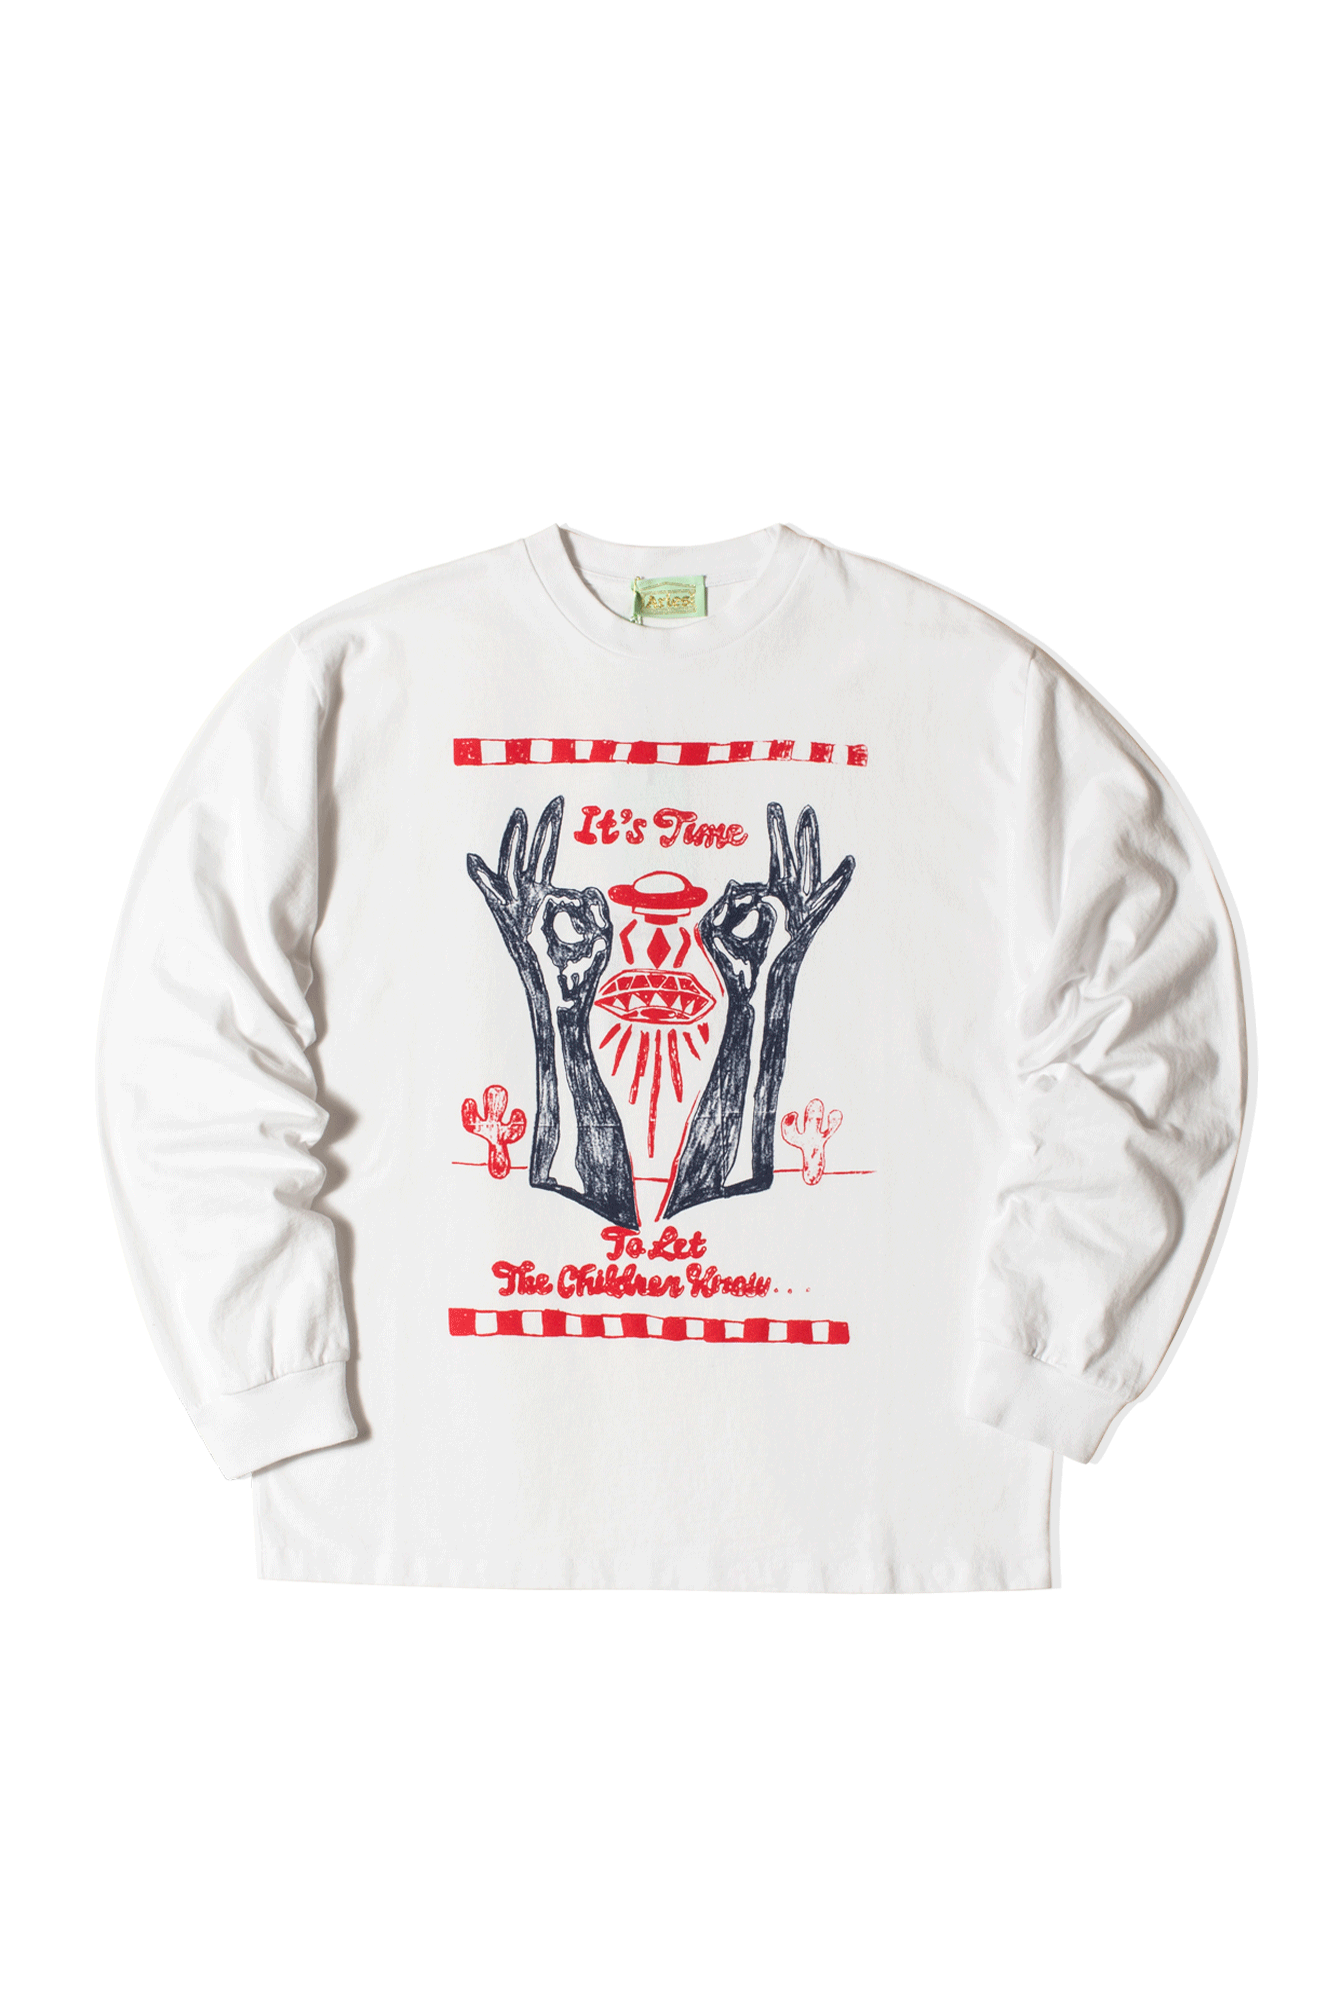 Aries Long sleeve T-Shirts It's Time LongSleeve T-Shirt White SRAR60007#000#WHT#M - One Block Down